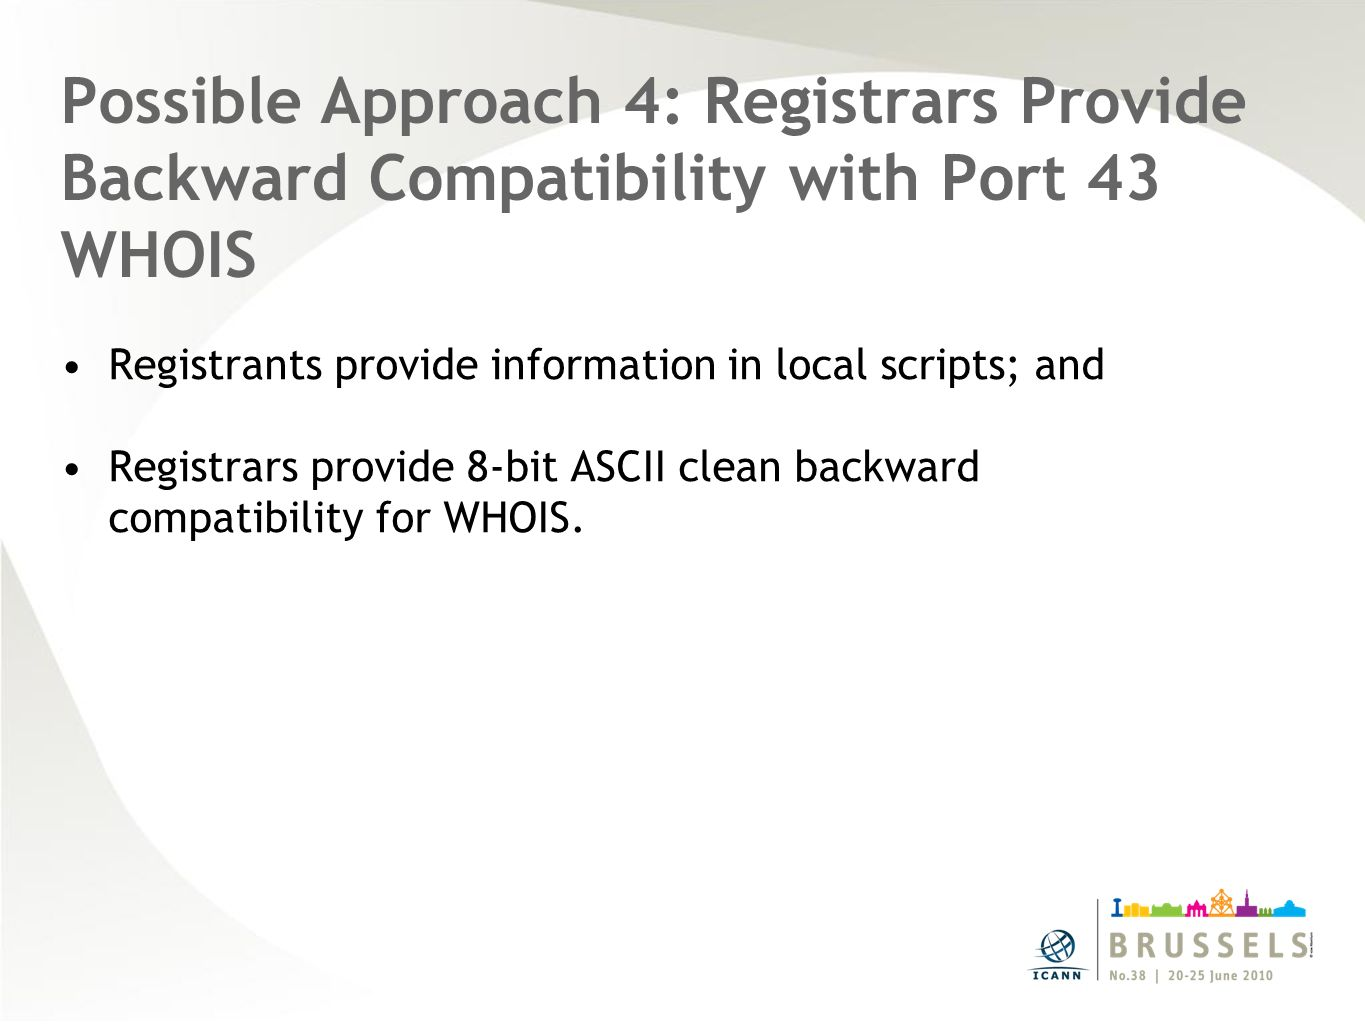 Possible Approach 4: Registrars Provide Backward Compatibility with Port 43 WHOIS Registrants provide information in local scripts; and Registrars provide 8-bit ASCII clean backward compatibility for WHOIS.